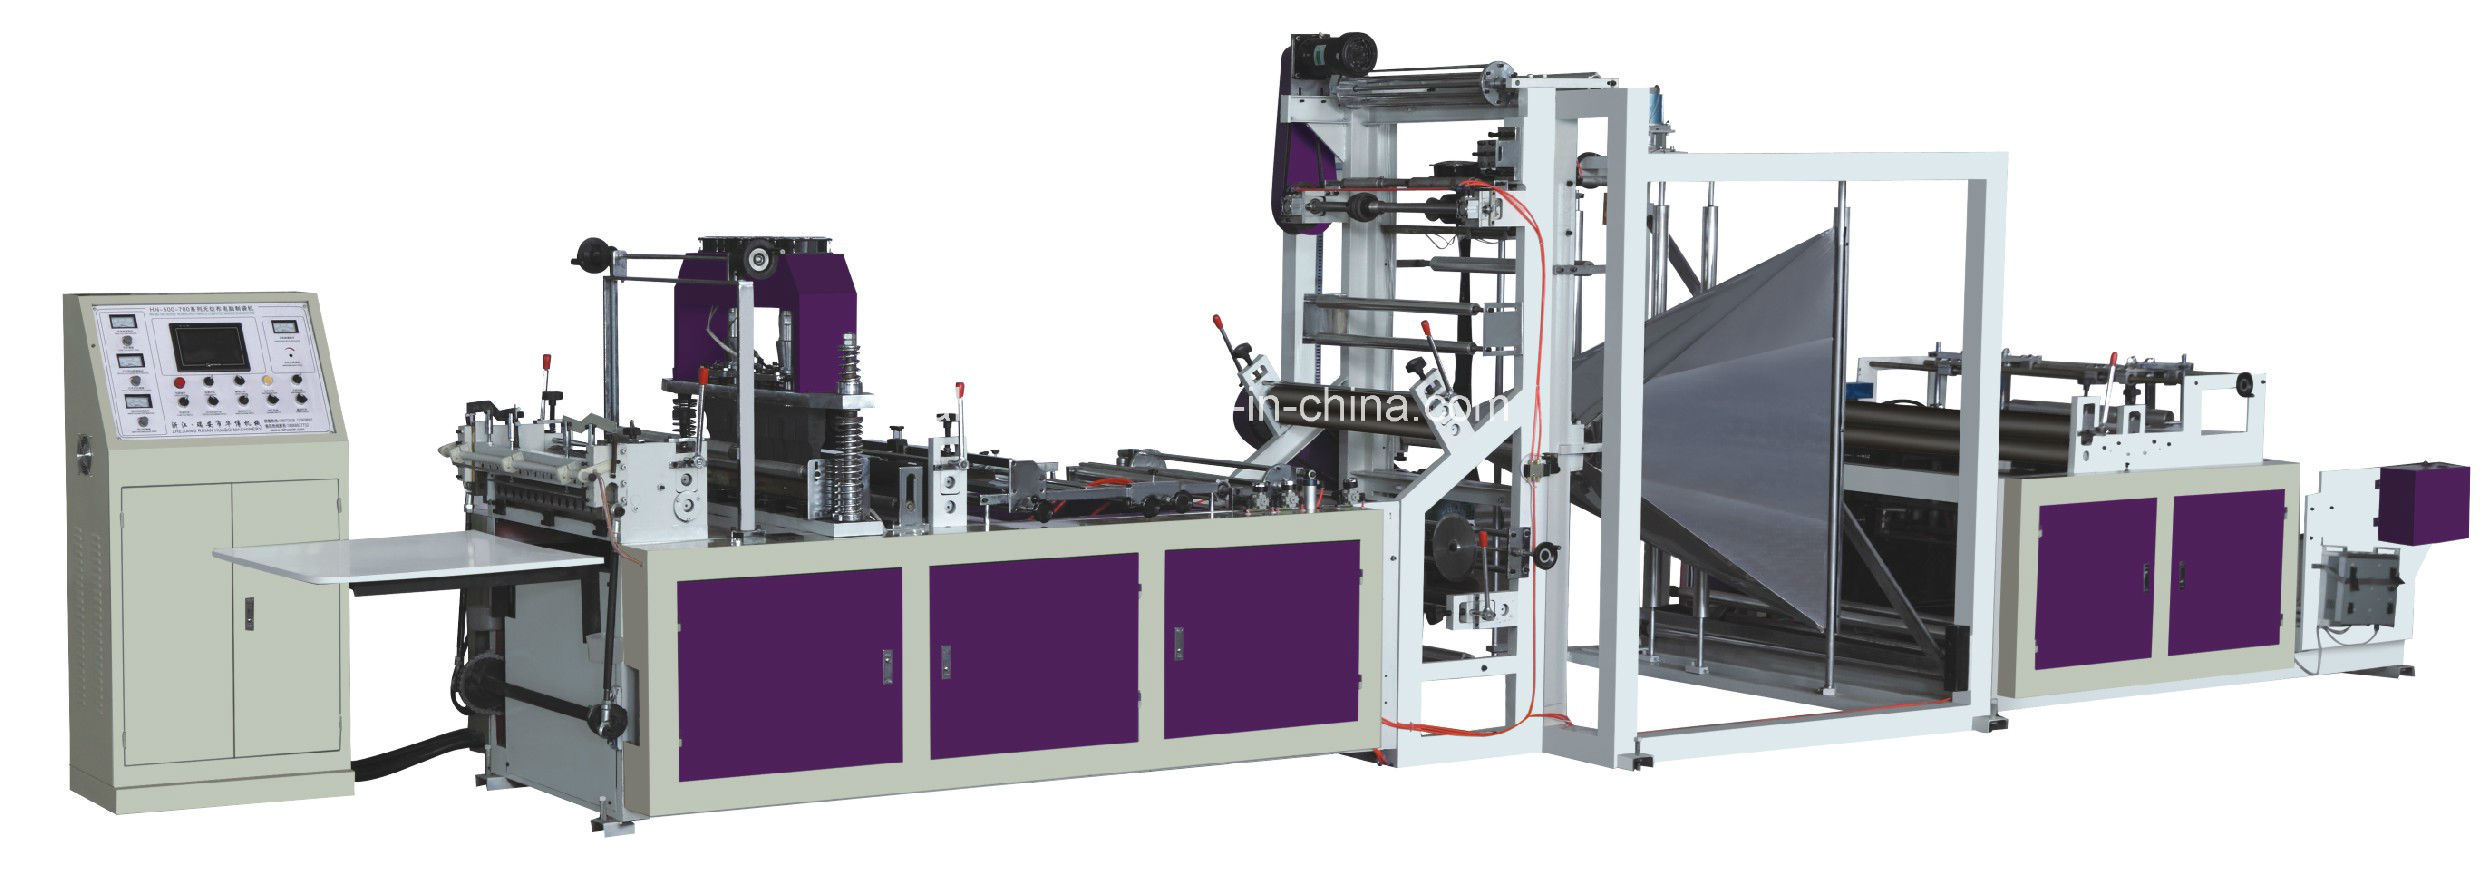 PP Nonwoven Fabric Bag Making Machine (WFB-600A)